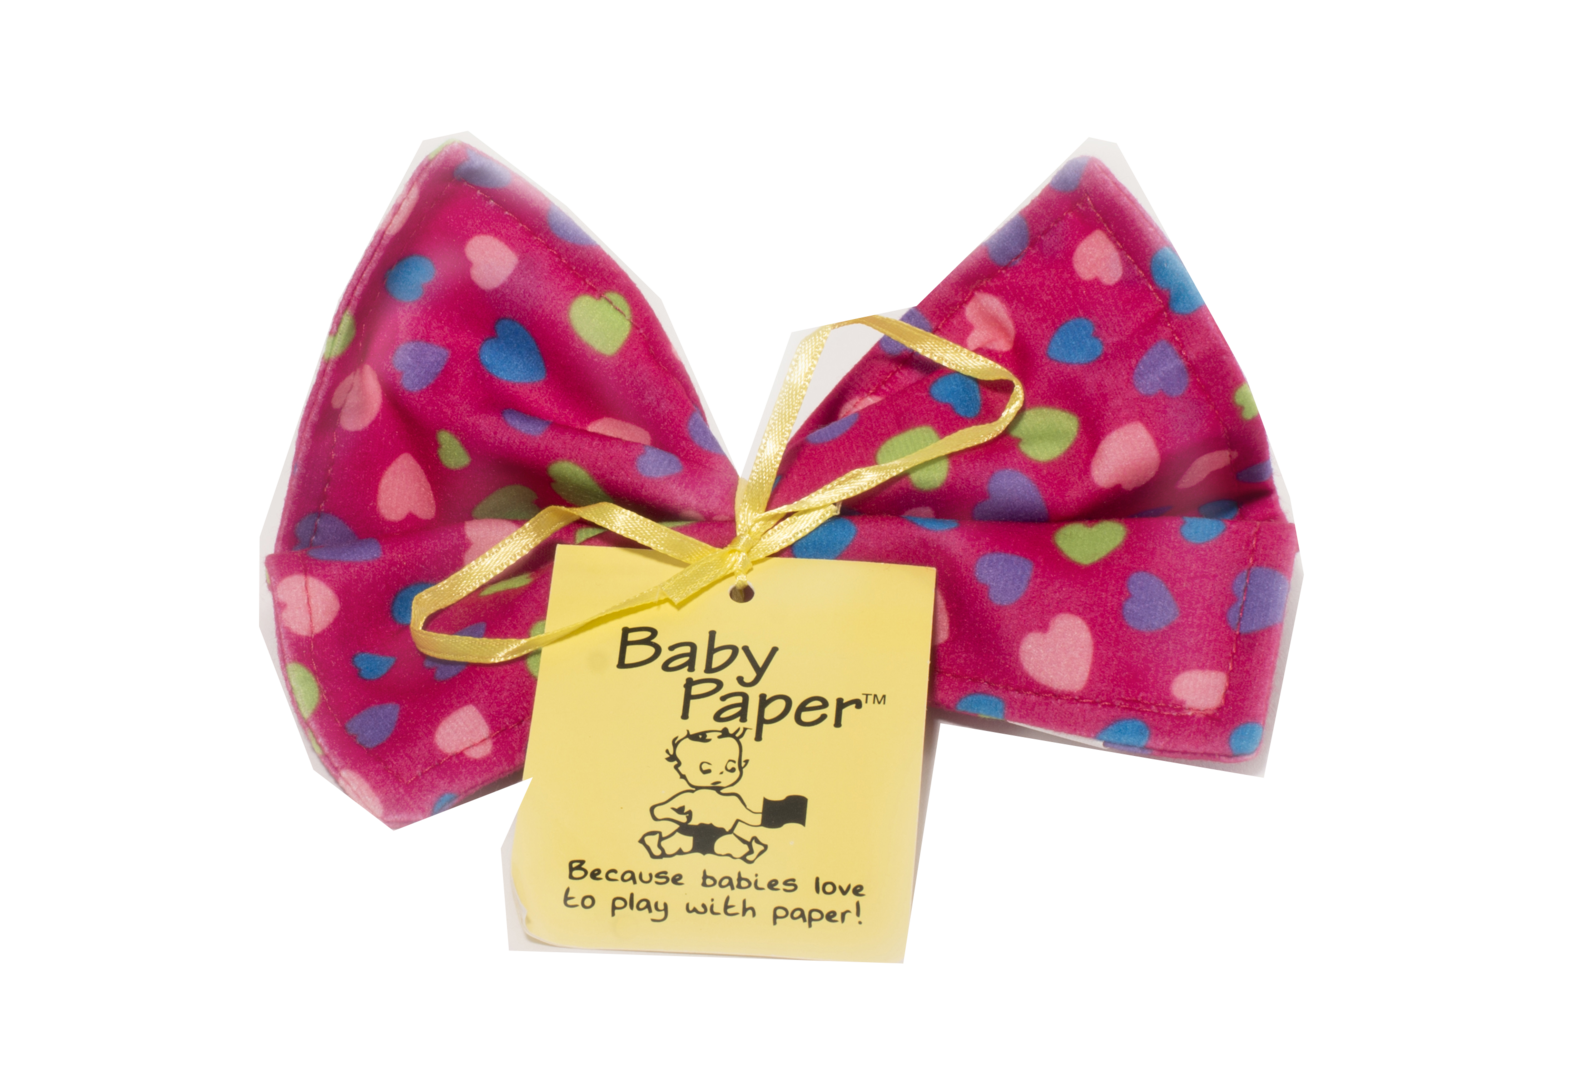 Baby Paper Crinkly Baby Toy - Pink Heart